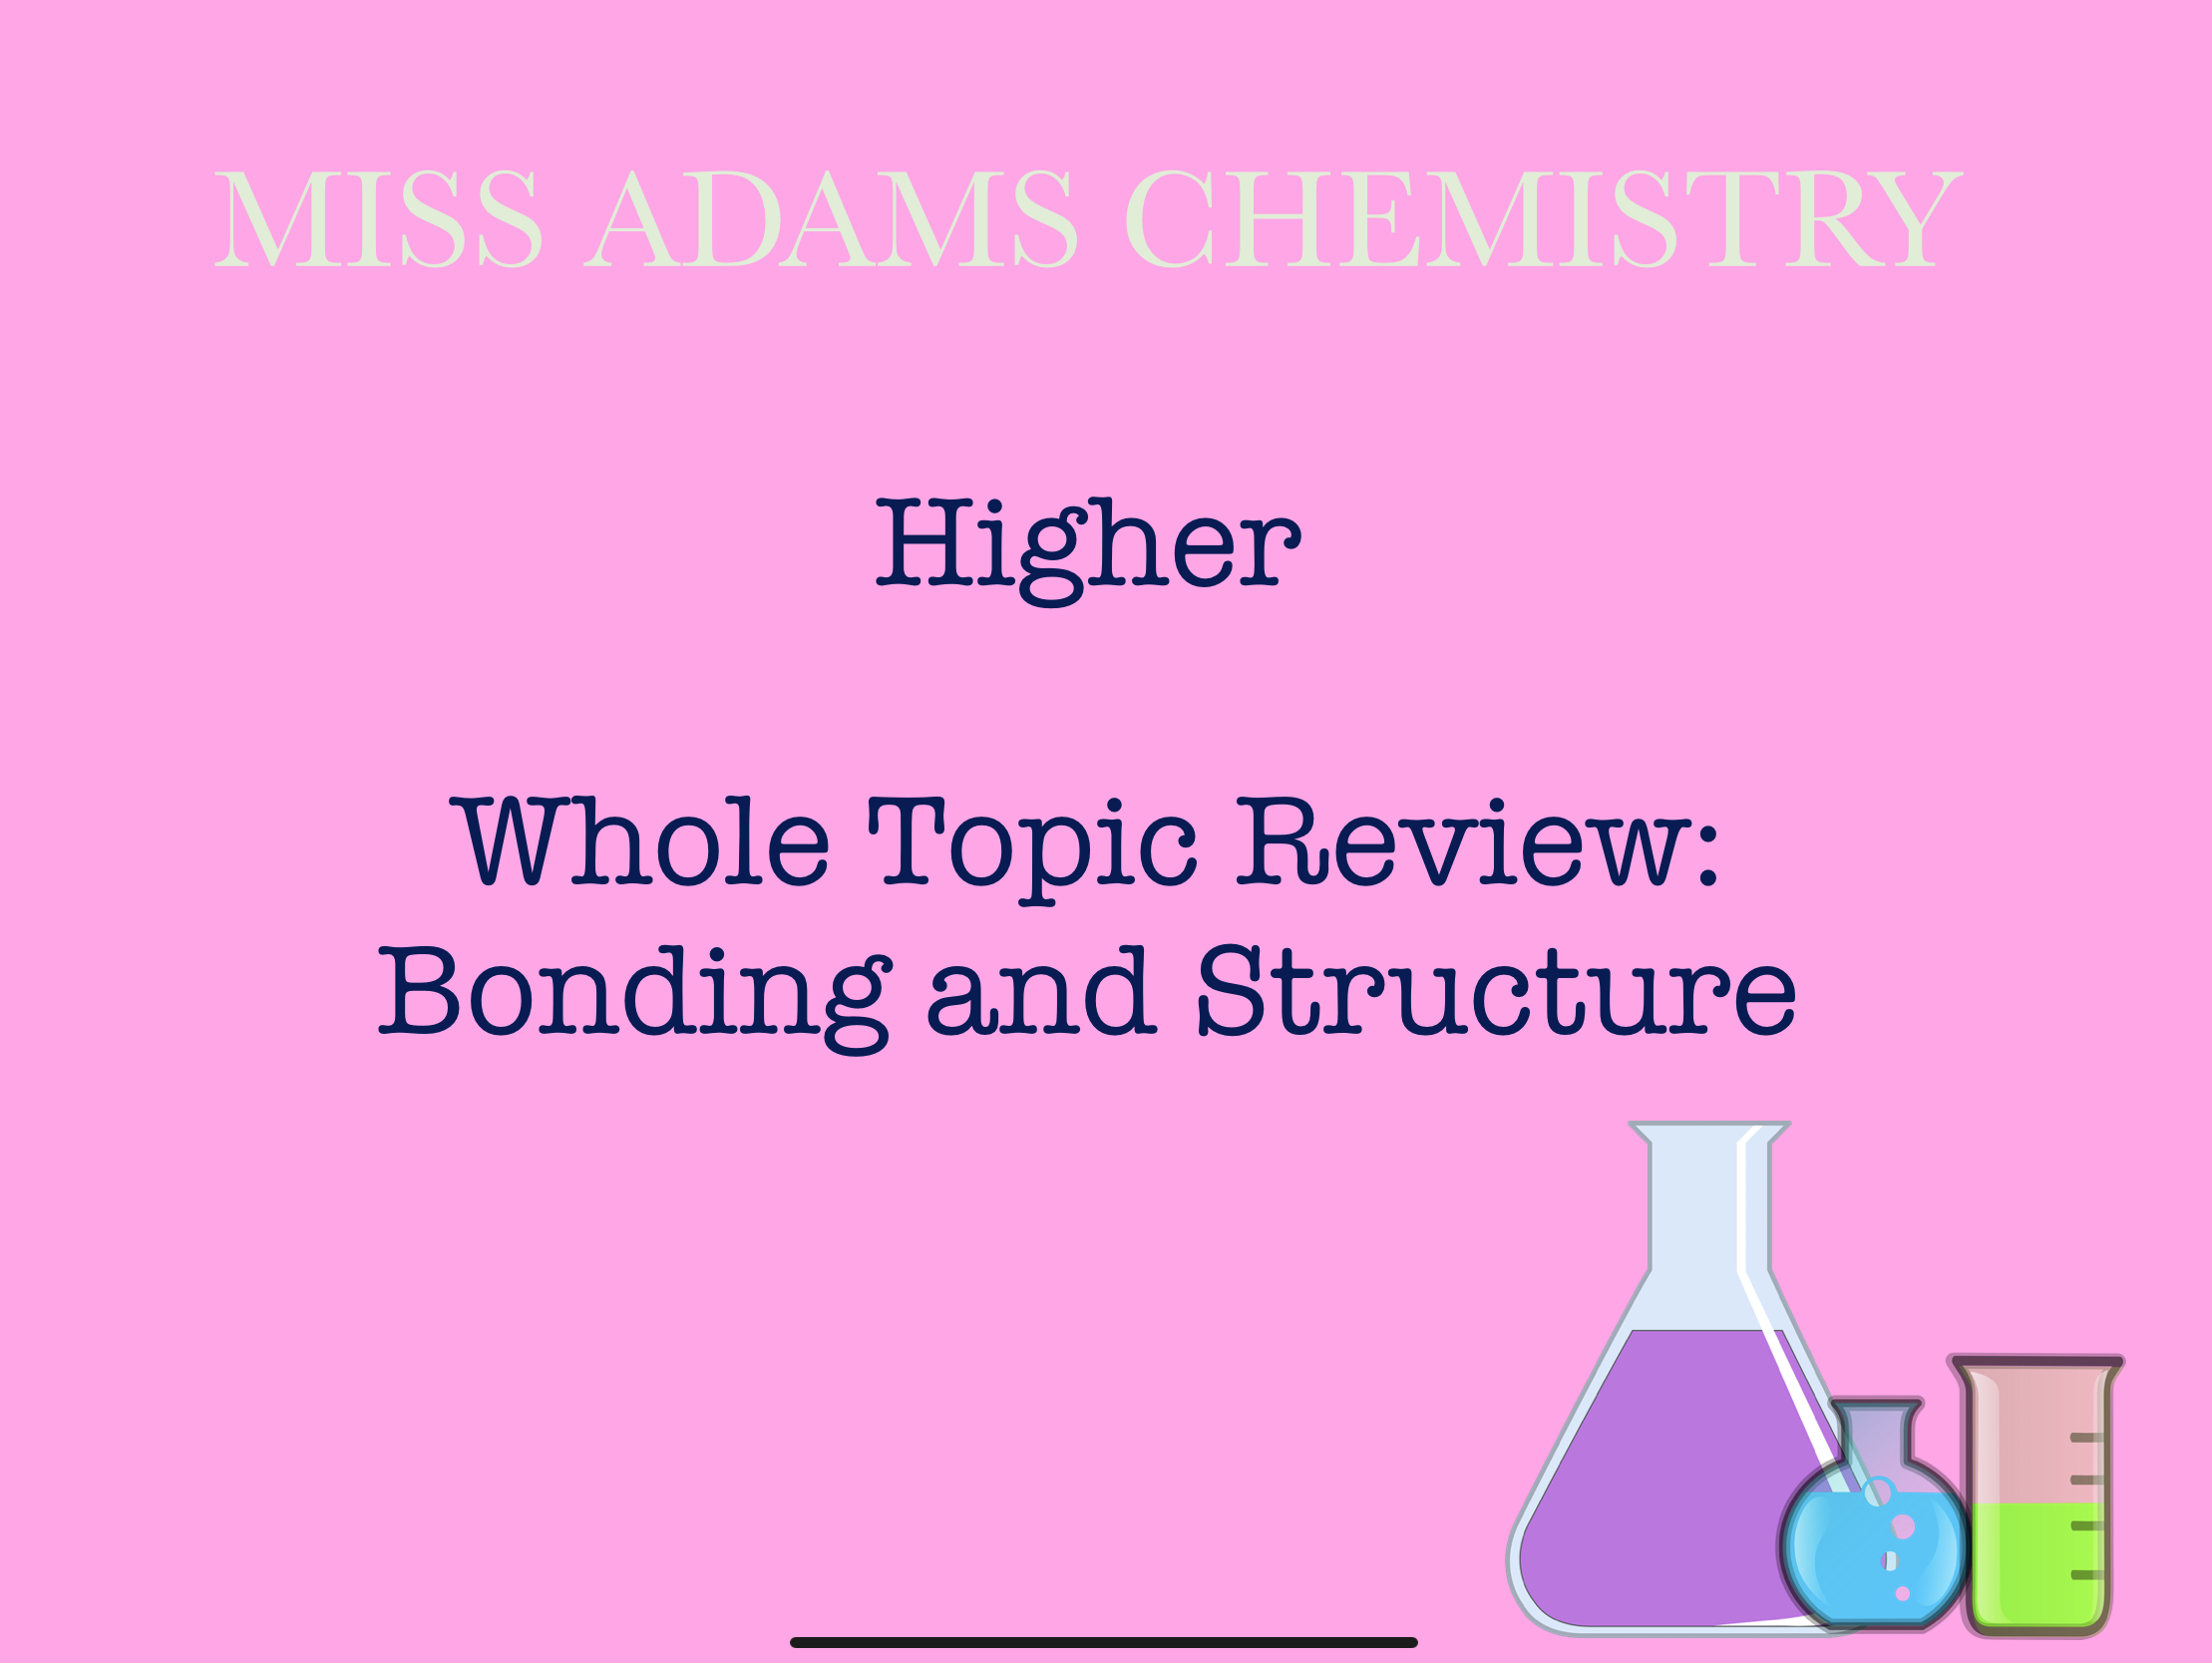 image from Bonding and Structure Whole Topic Review